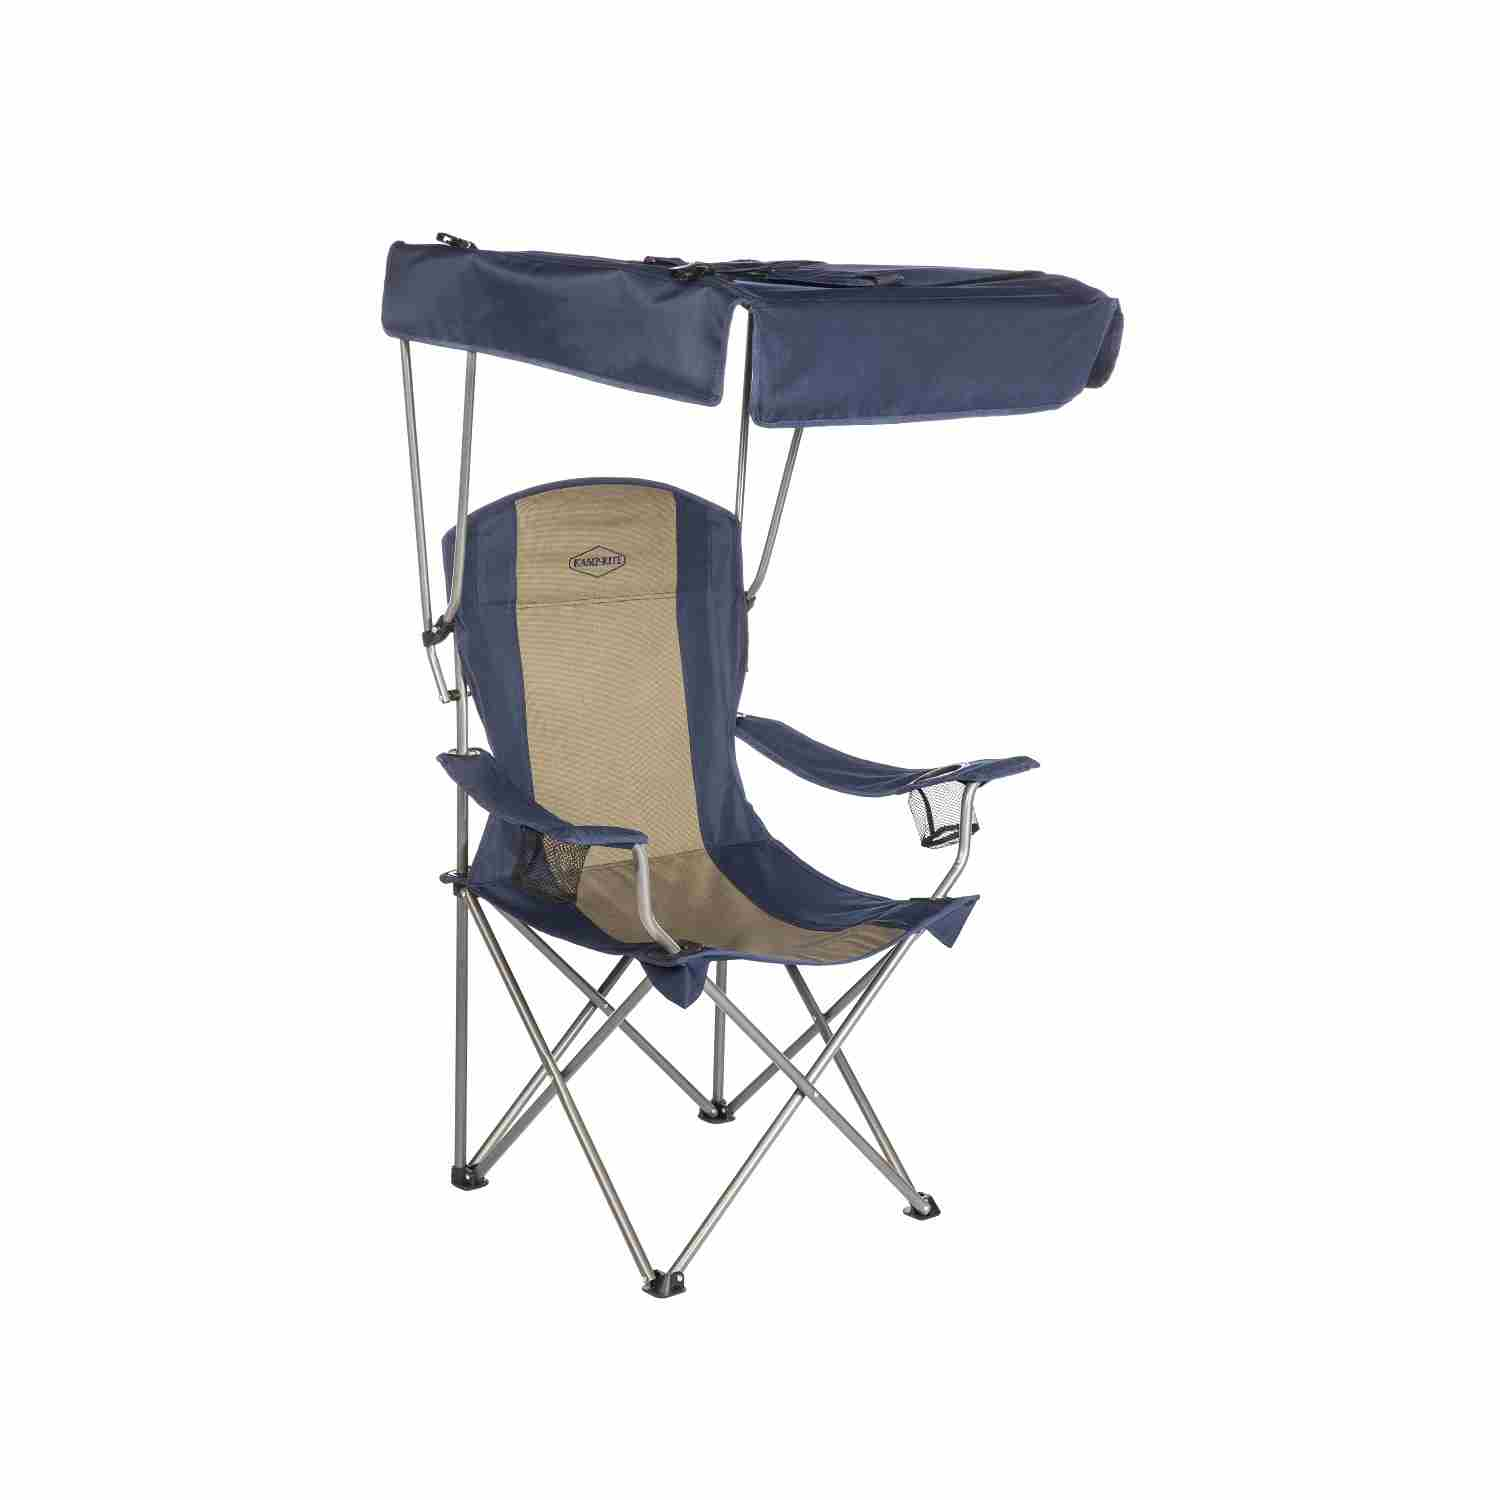 kamp-canopy-camping-chairs-folding